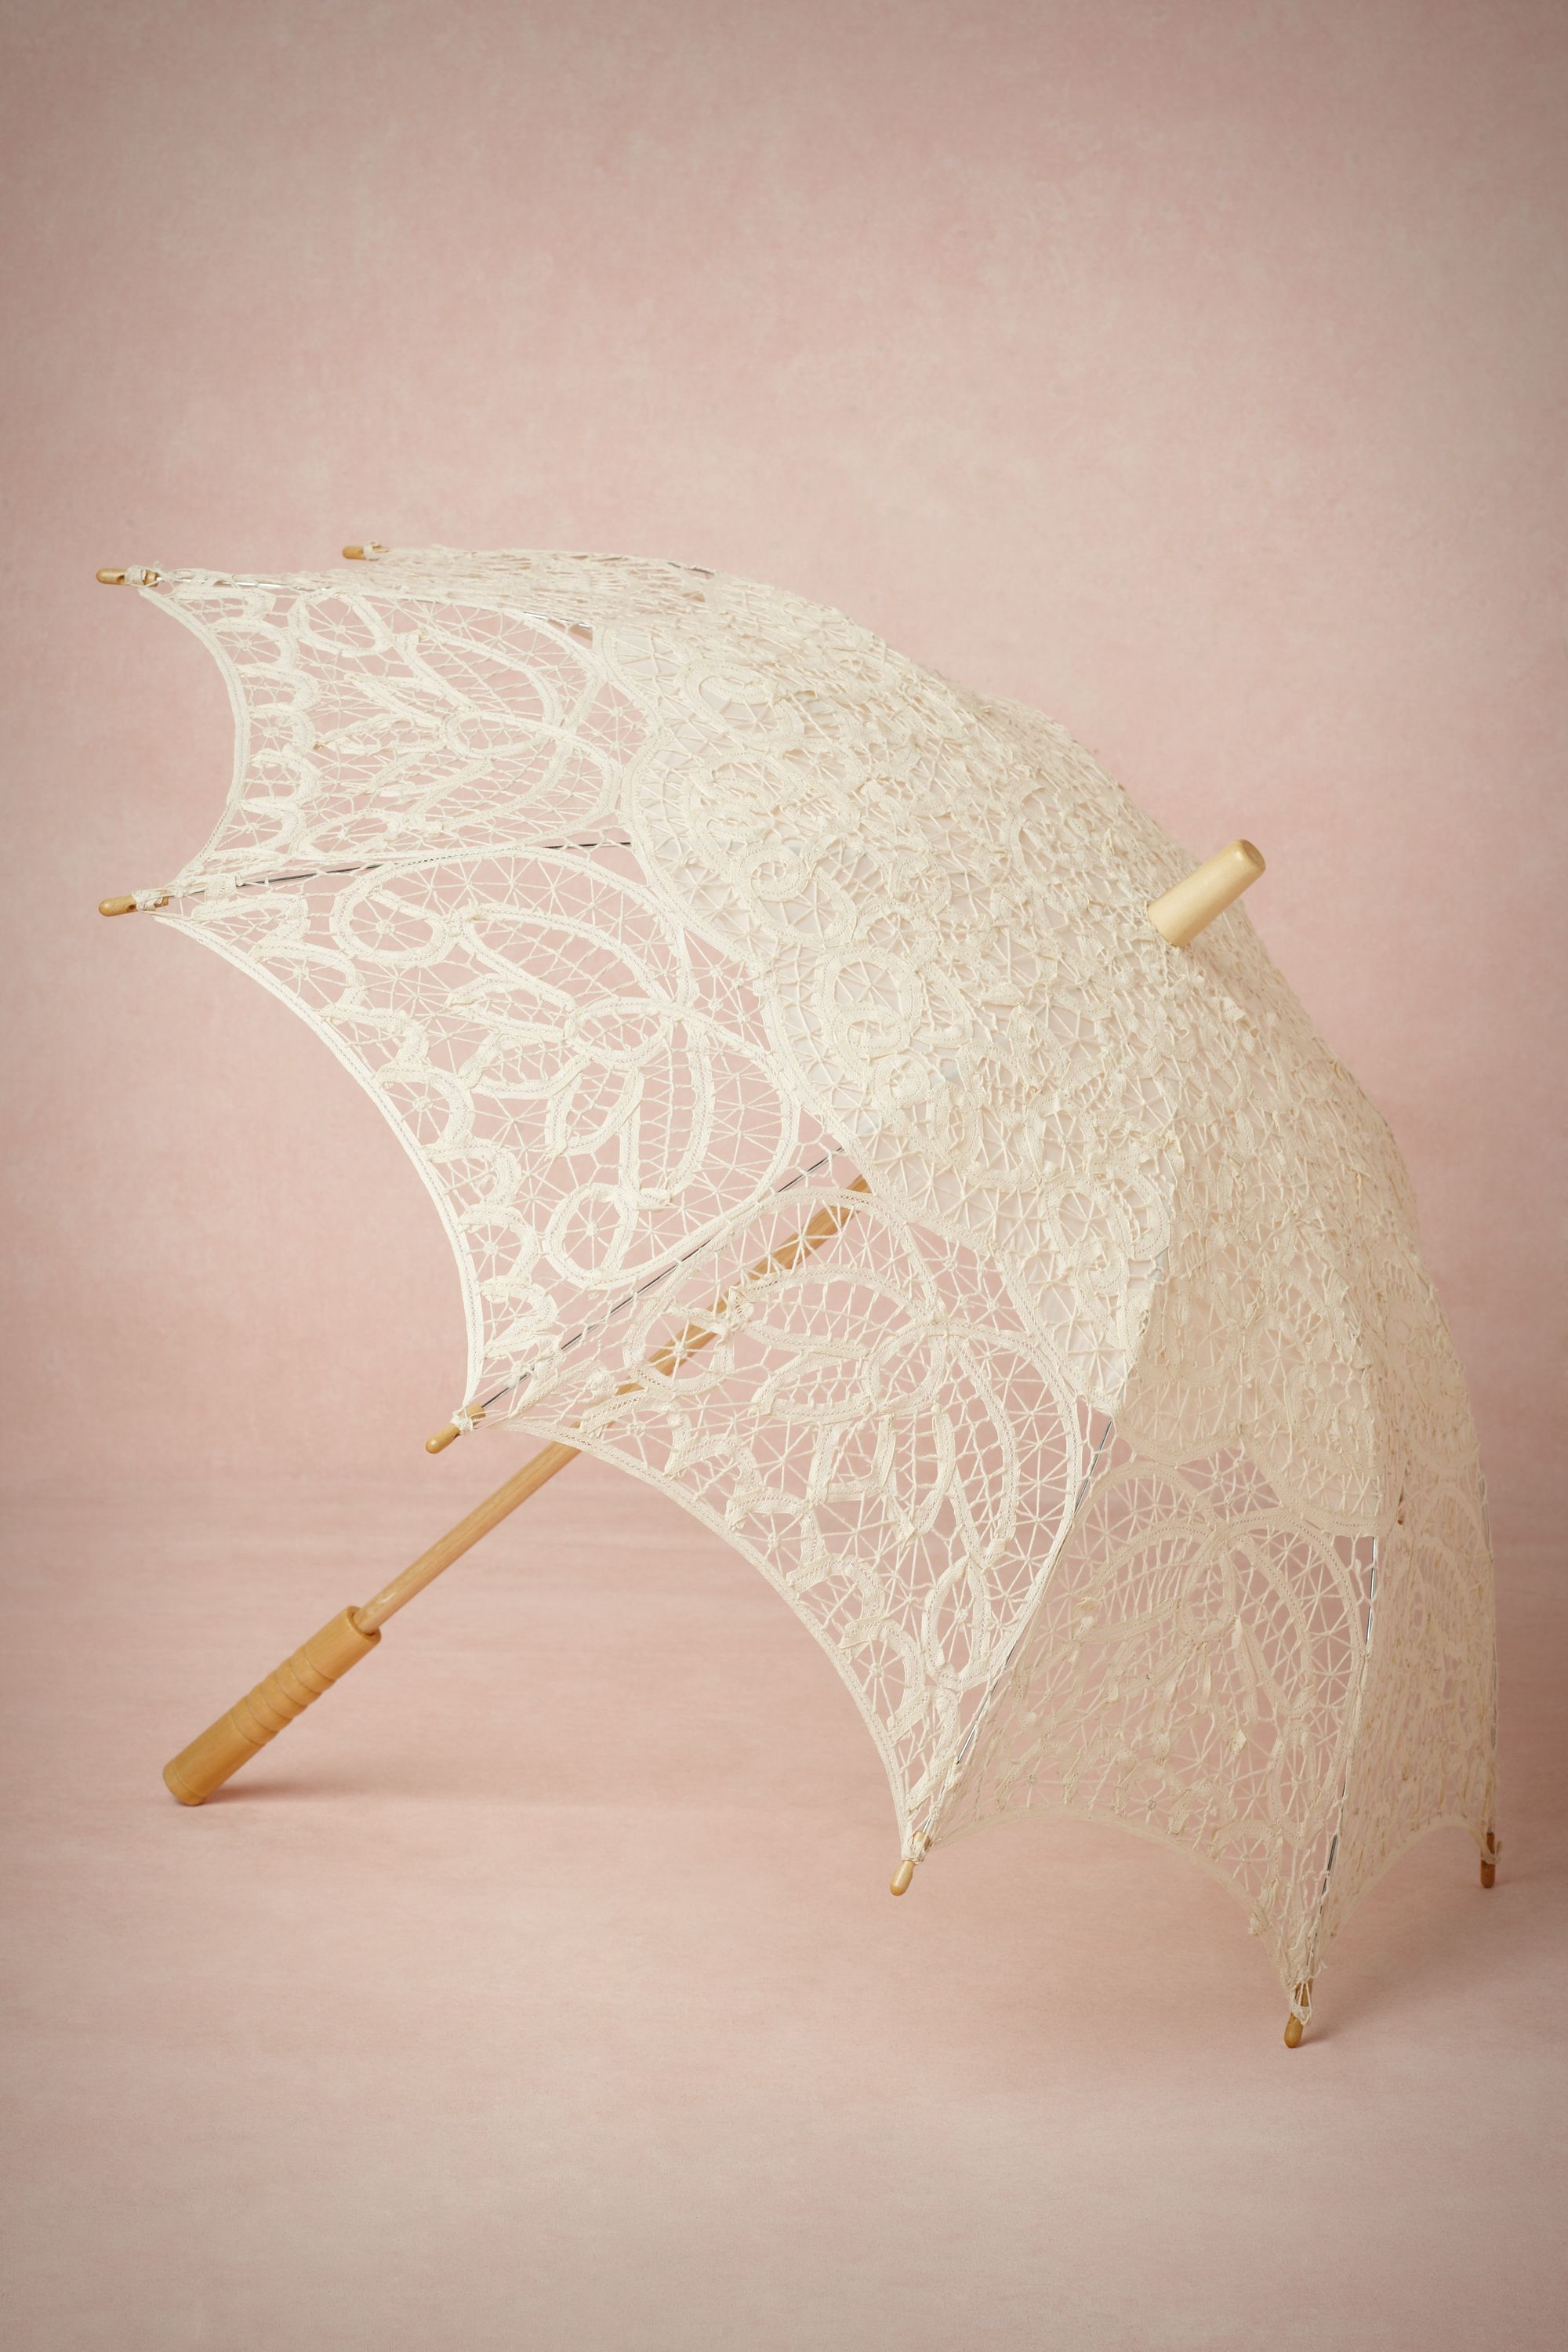 9515f2c2a24a Ombrelli Ombrelloni · Pizzi · Futuro Sposo · Vintage umbrella for wedding  decor or bride s accessory  accessories  umbrella  lace Matrimonio Ombrello